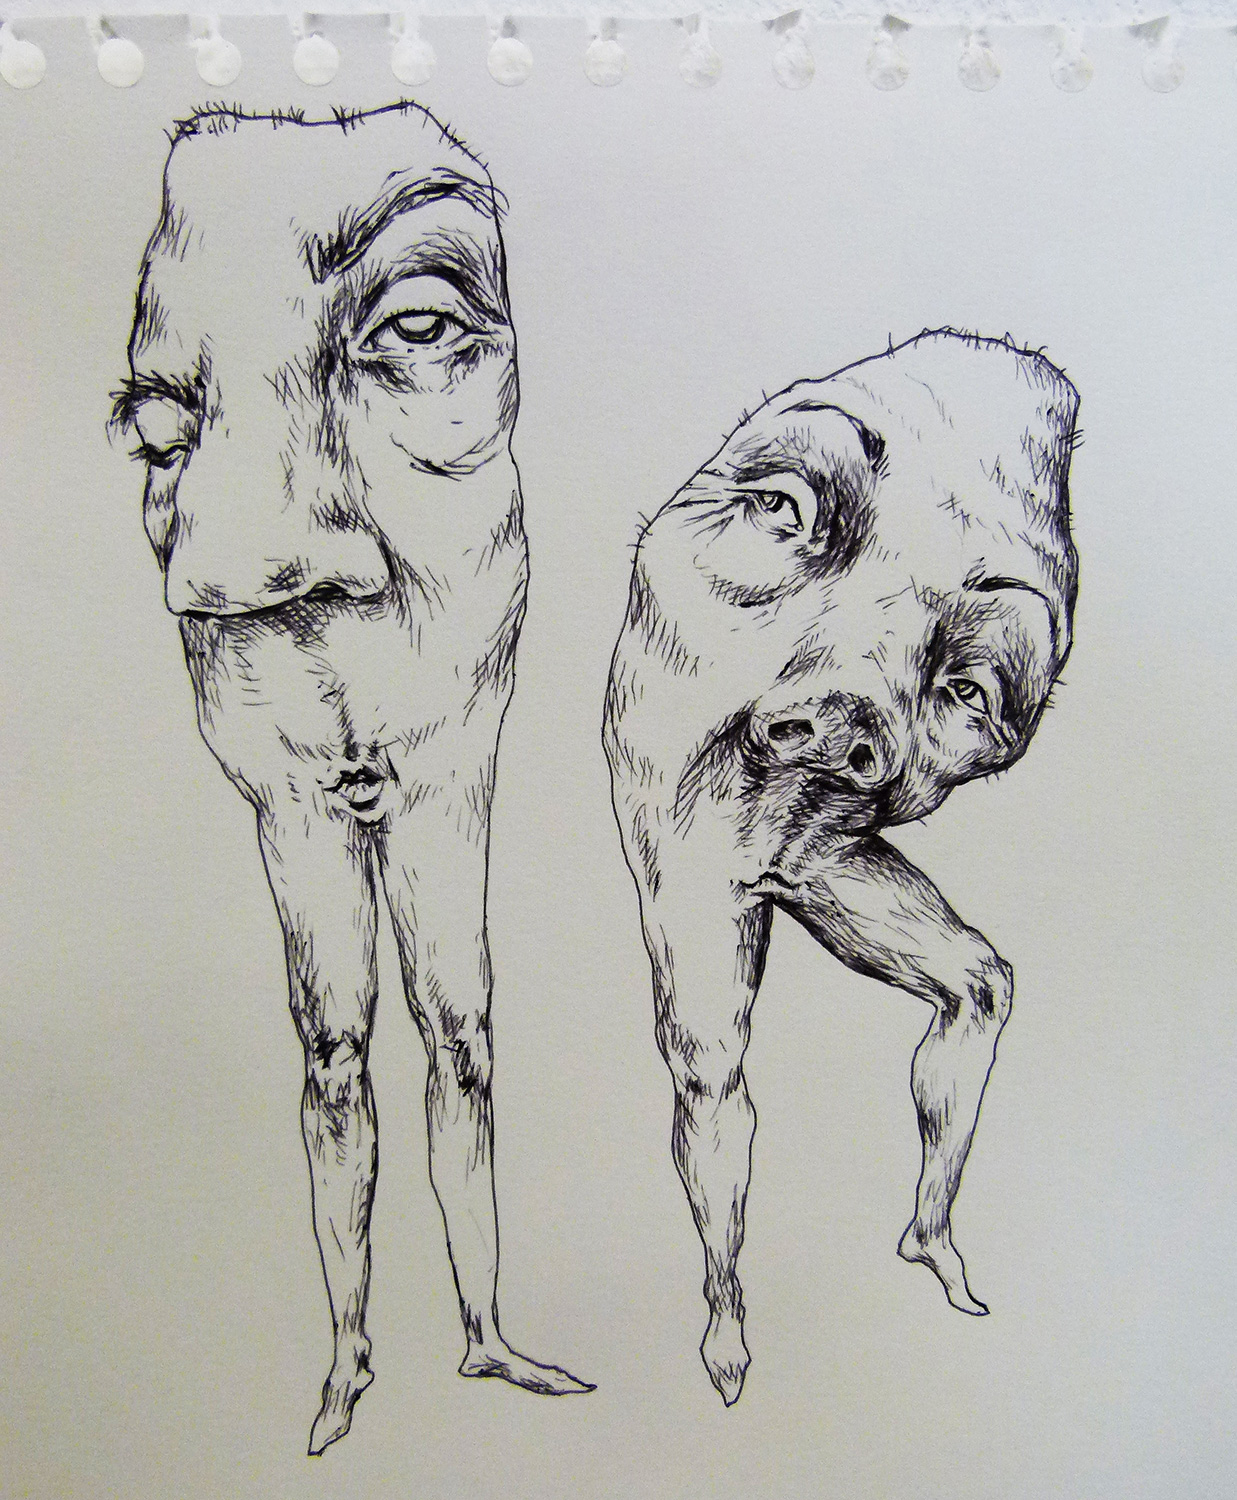 Pen on Paper, 20 x 20 cm, 2016, sold